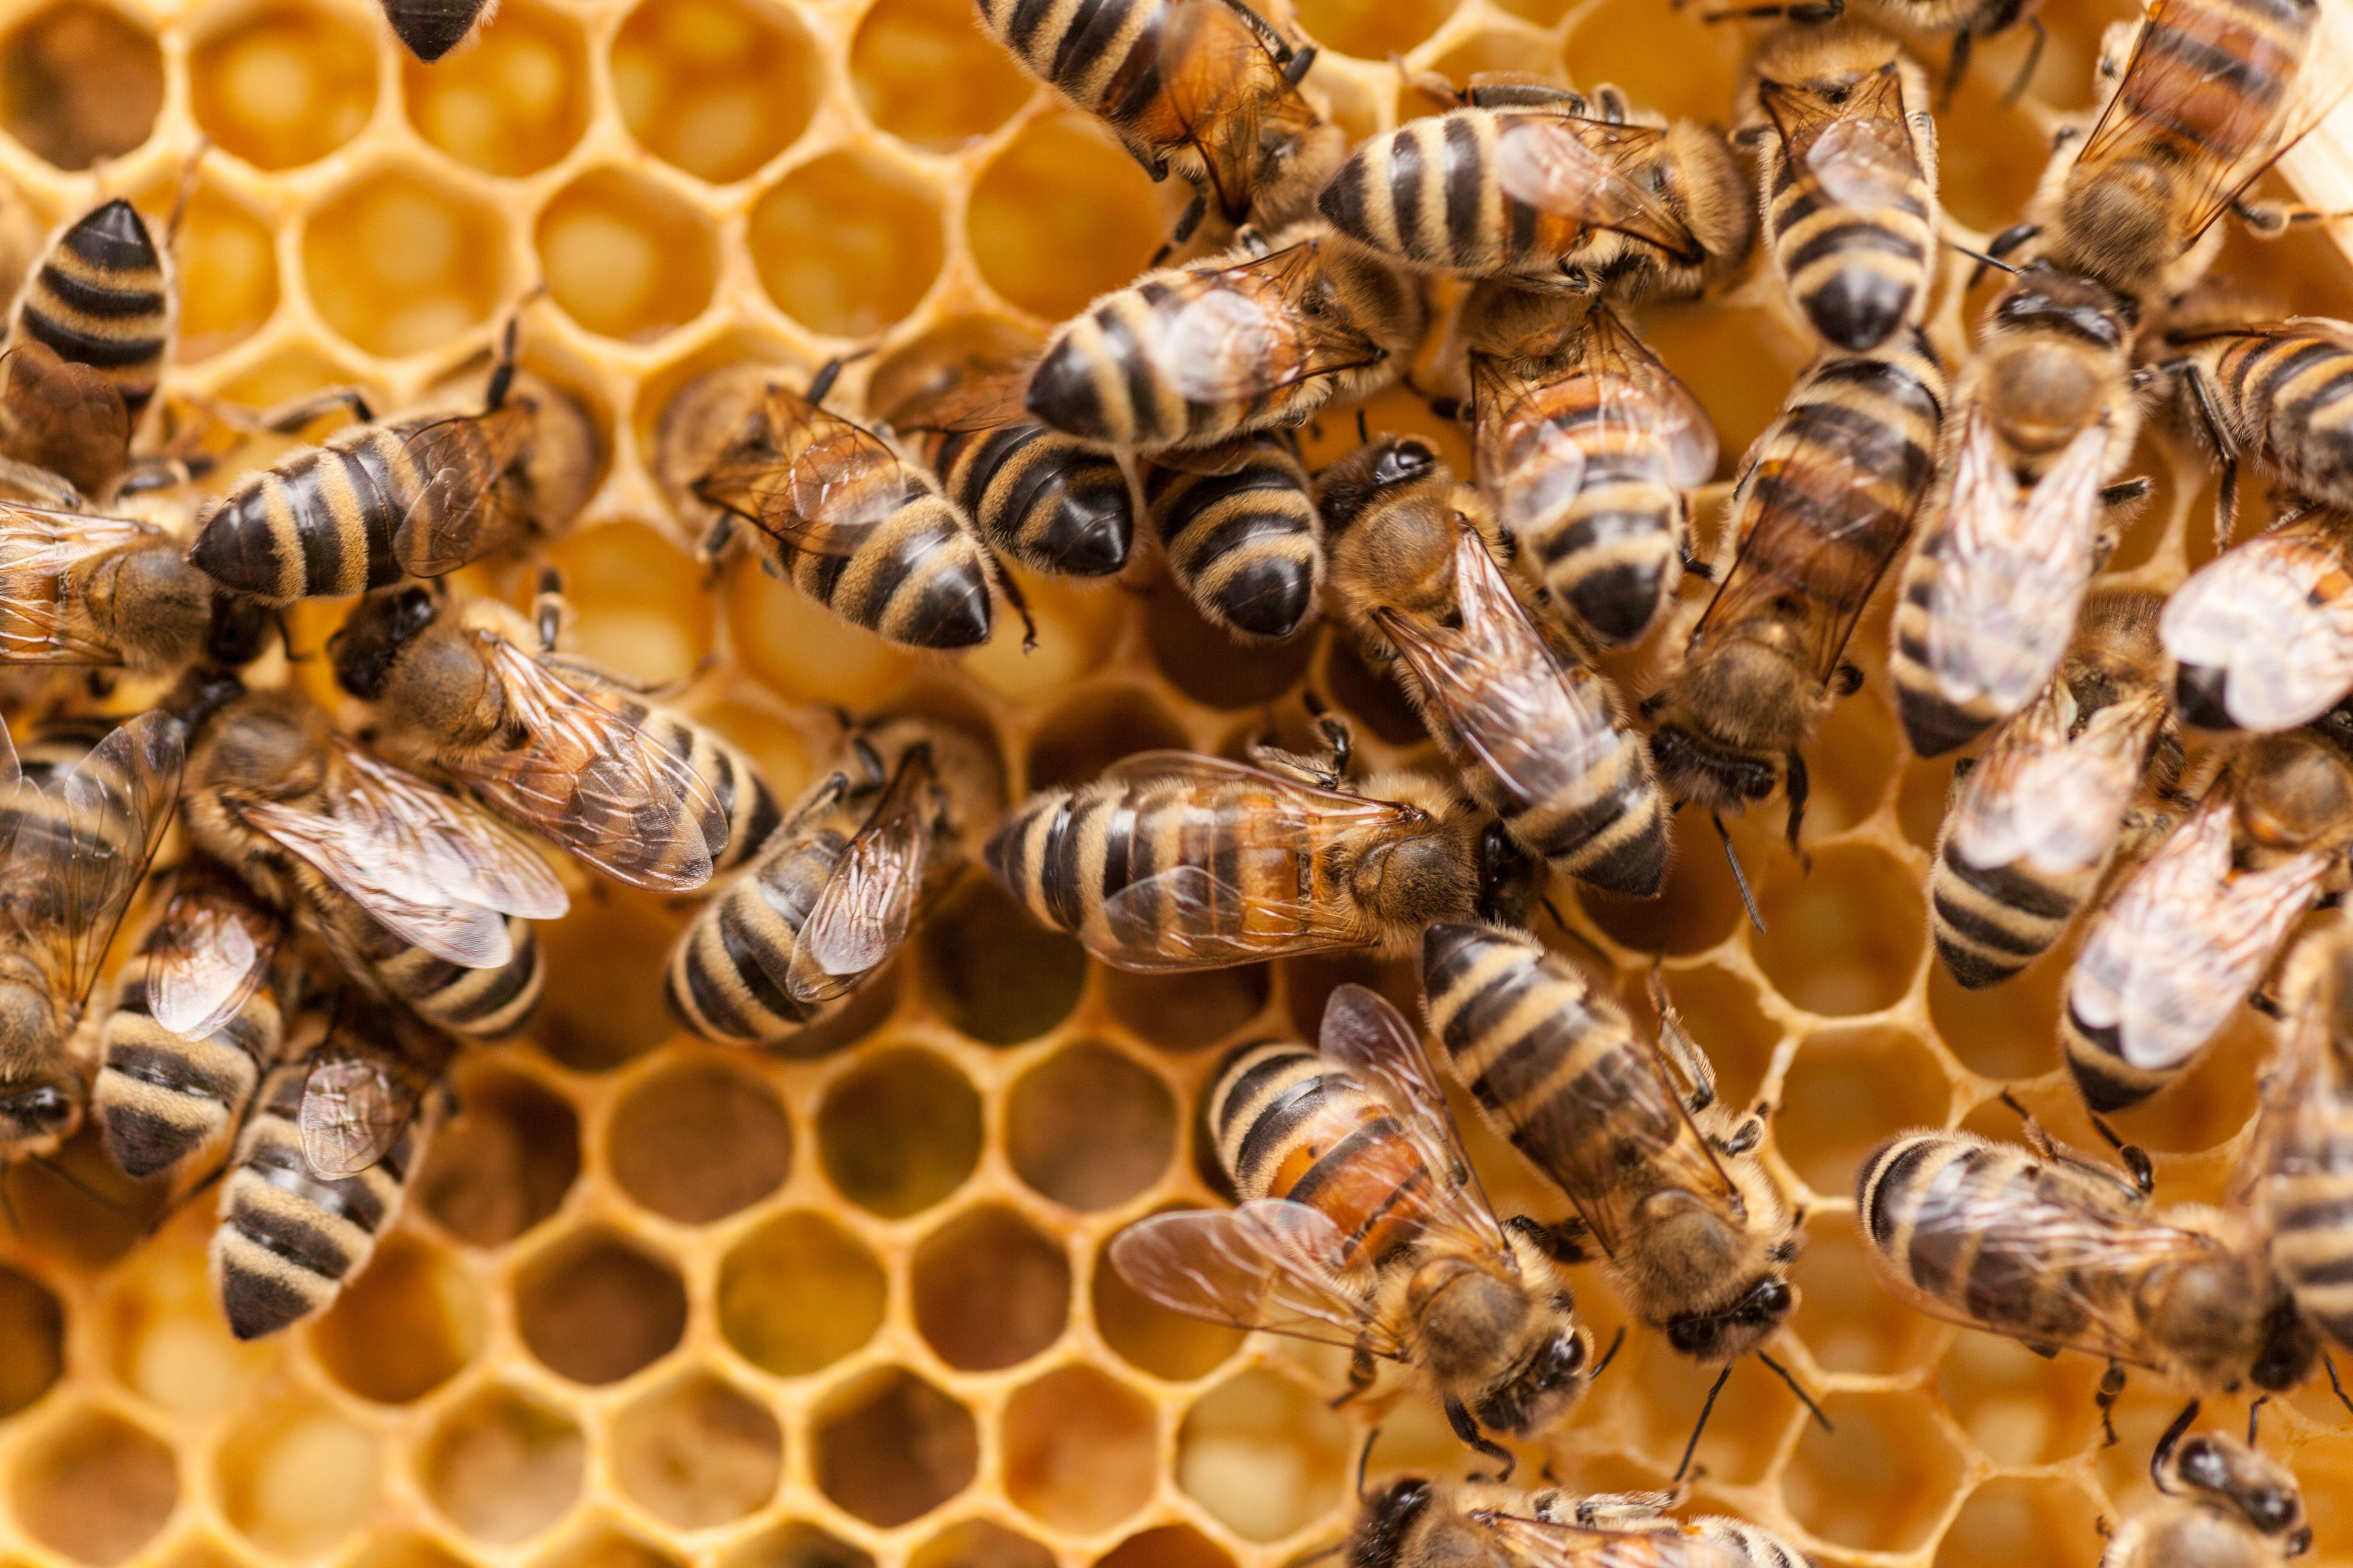 How to Keep Bees: A Beginner's Guide to Beekeeping - photo#16